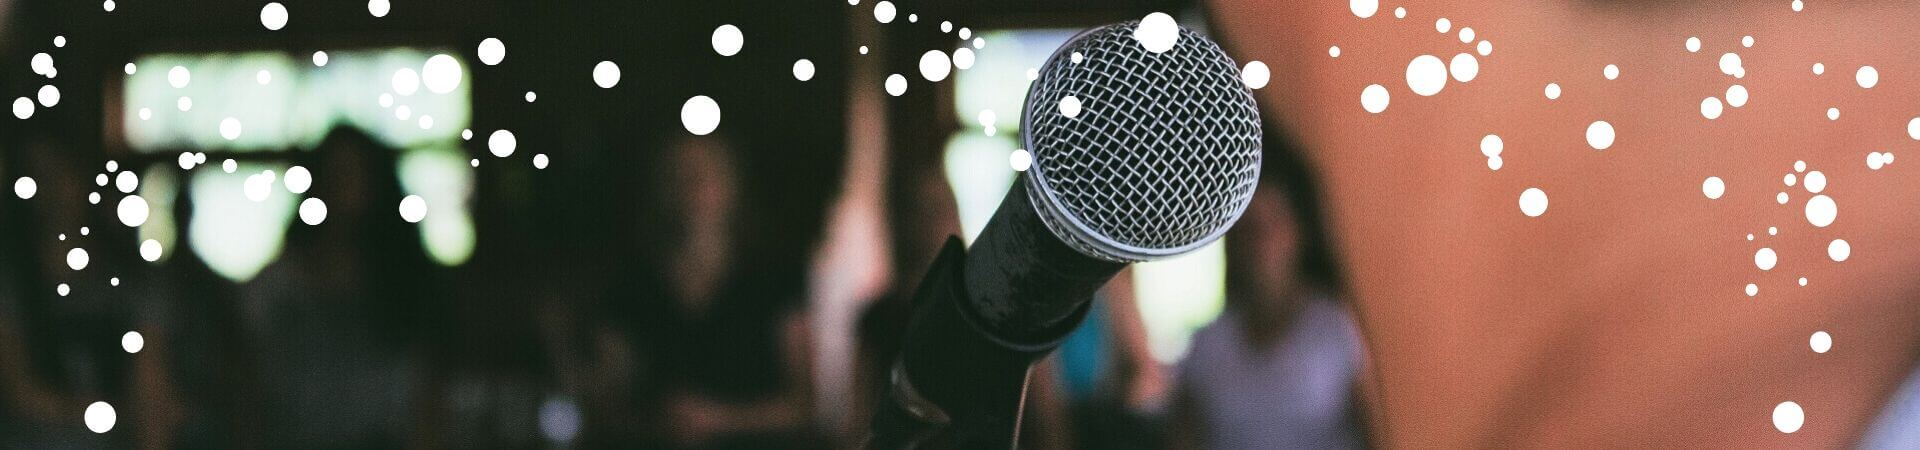 A close-up of a microphone from behind a performer's head. A blurry audience can barely be made out in the background.